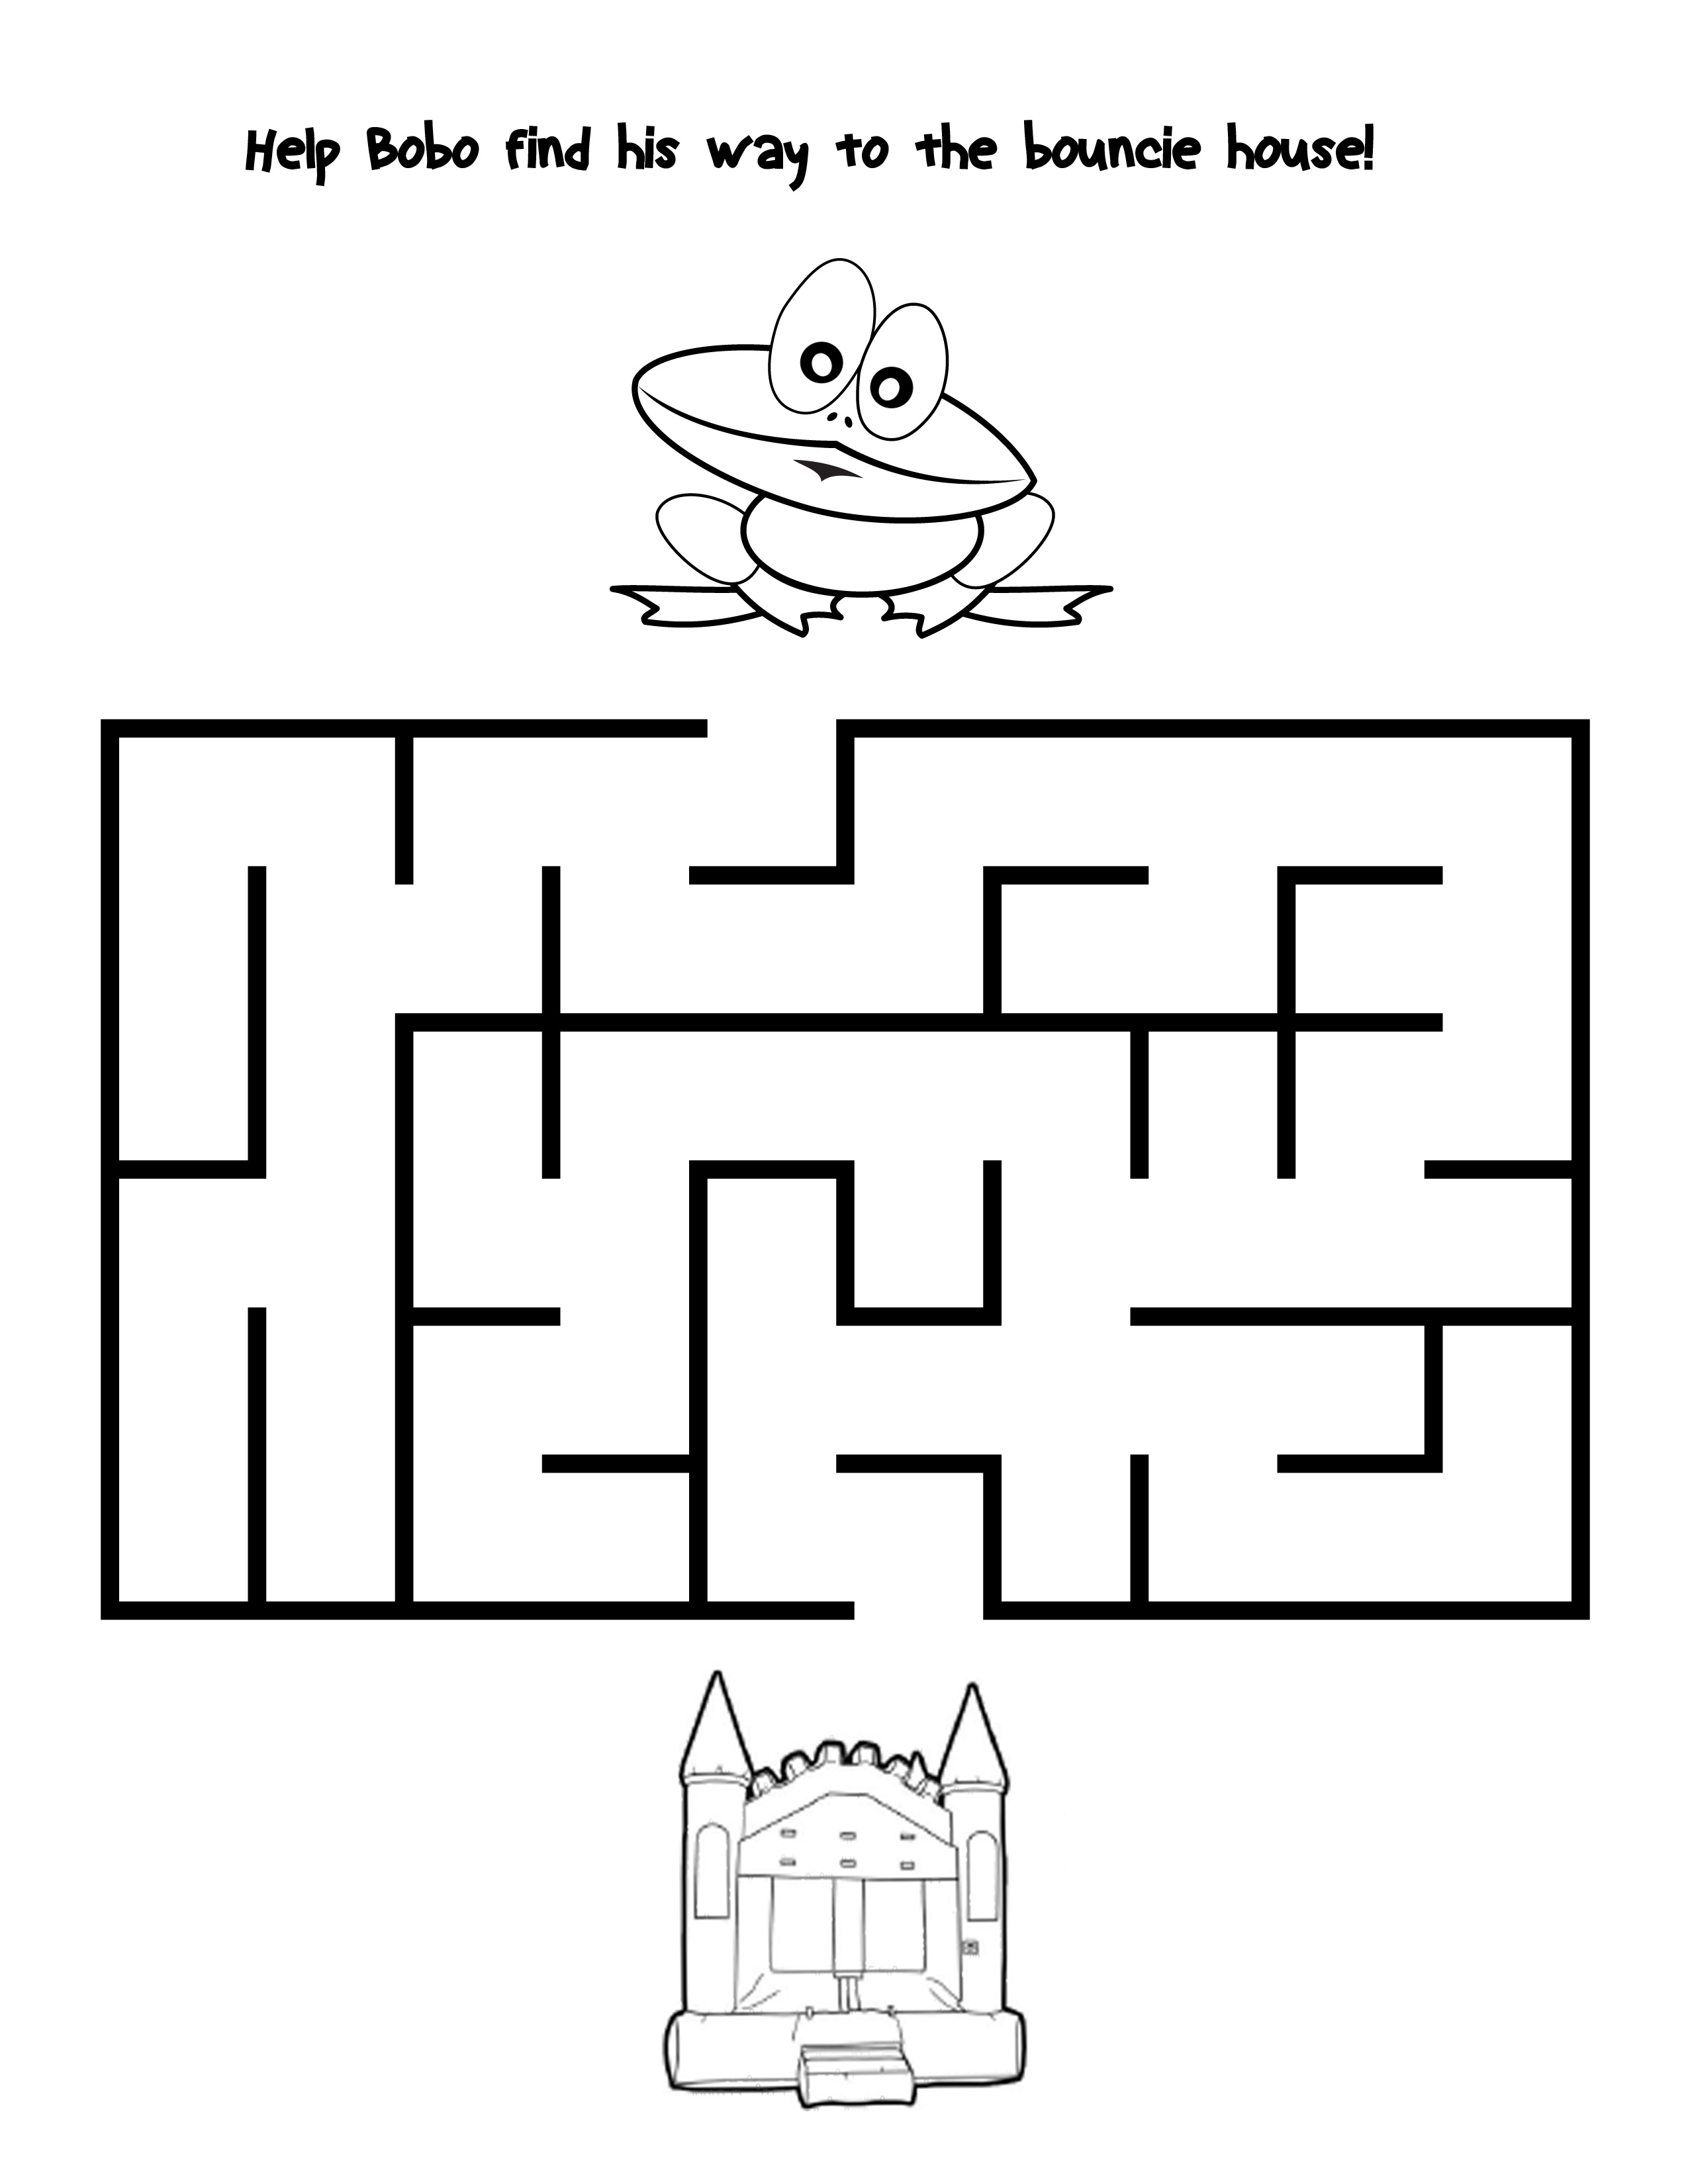 coloring activity pages party rentals in spring tx bobo bouncers